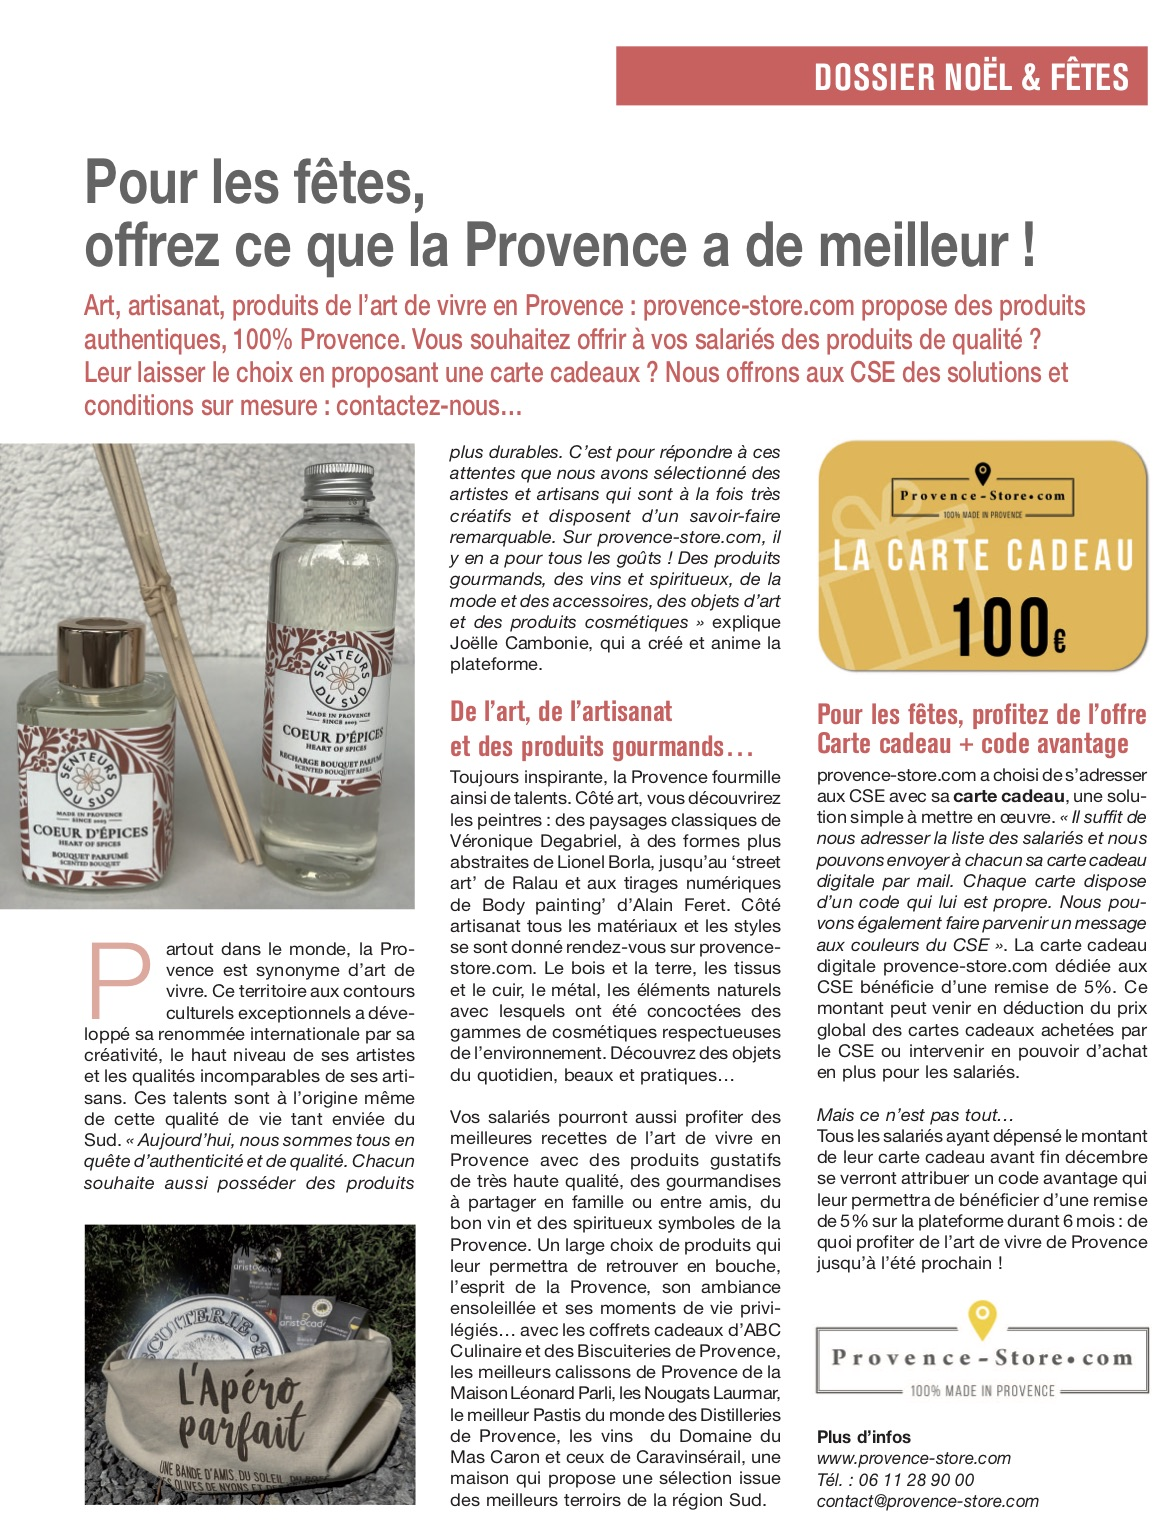 provence-store.com - article InfluenceCE